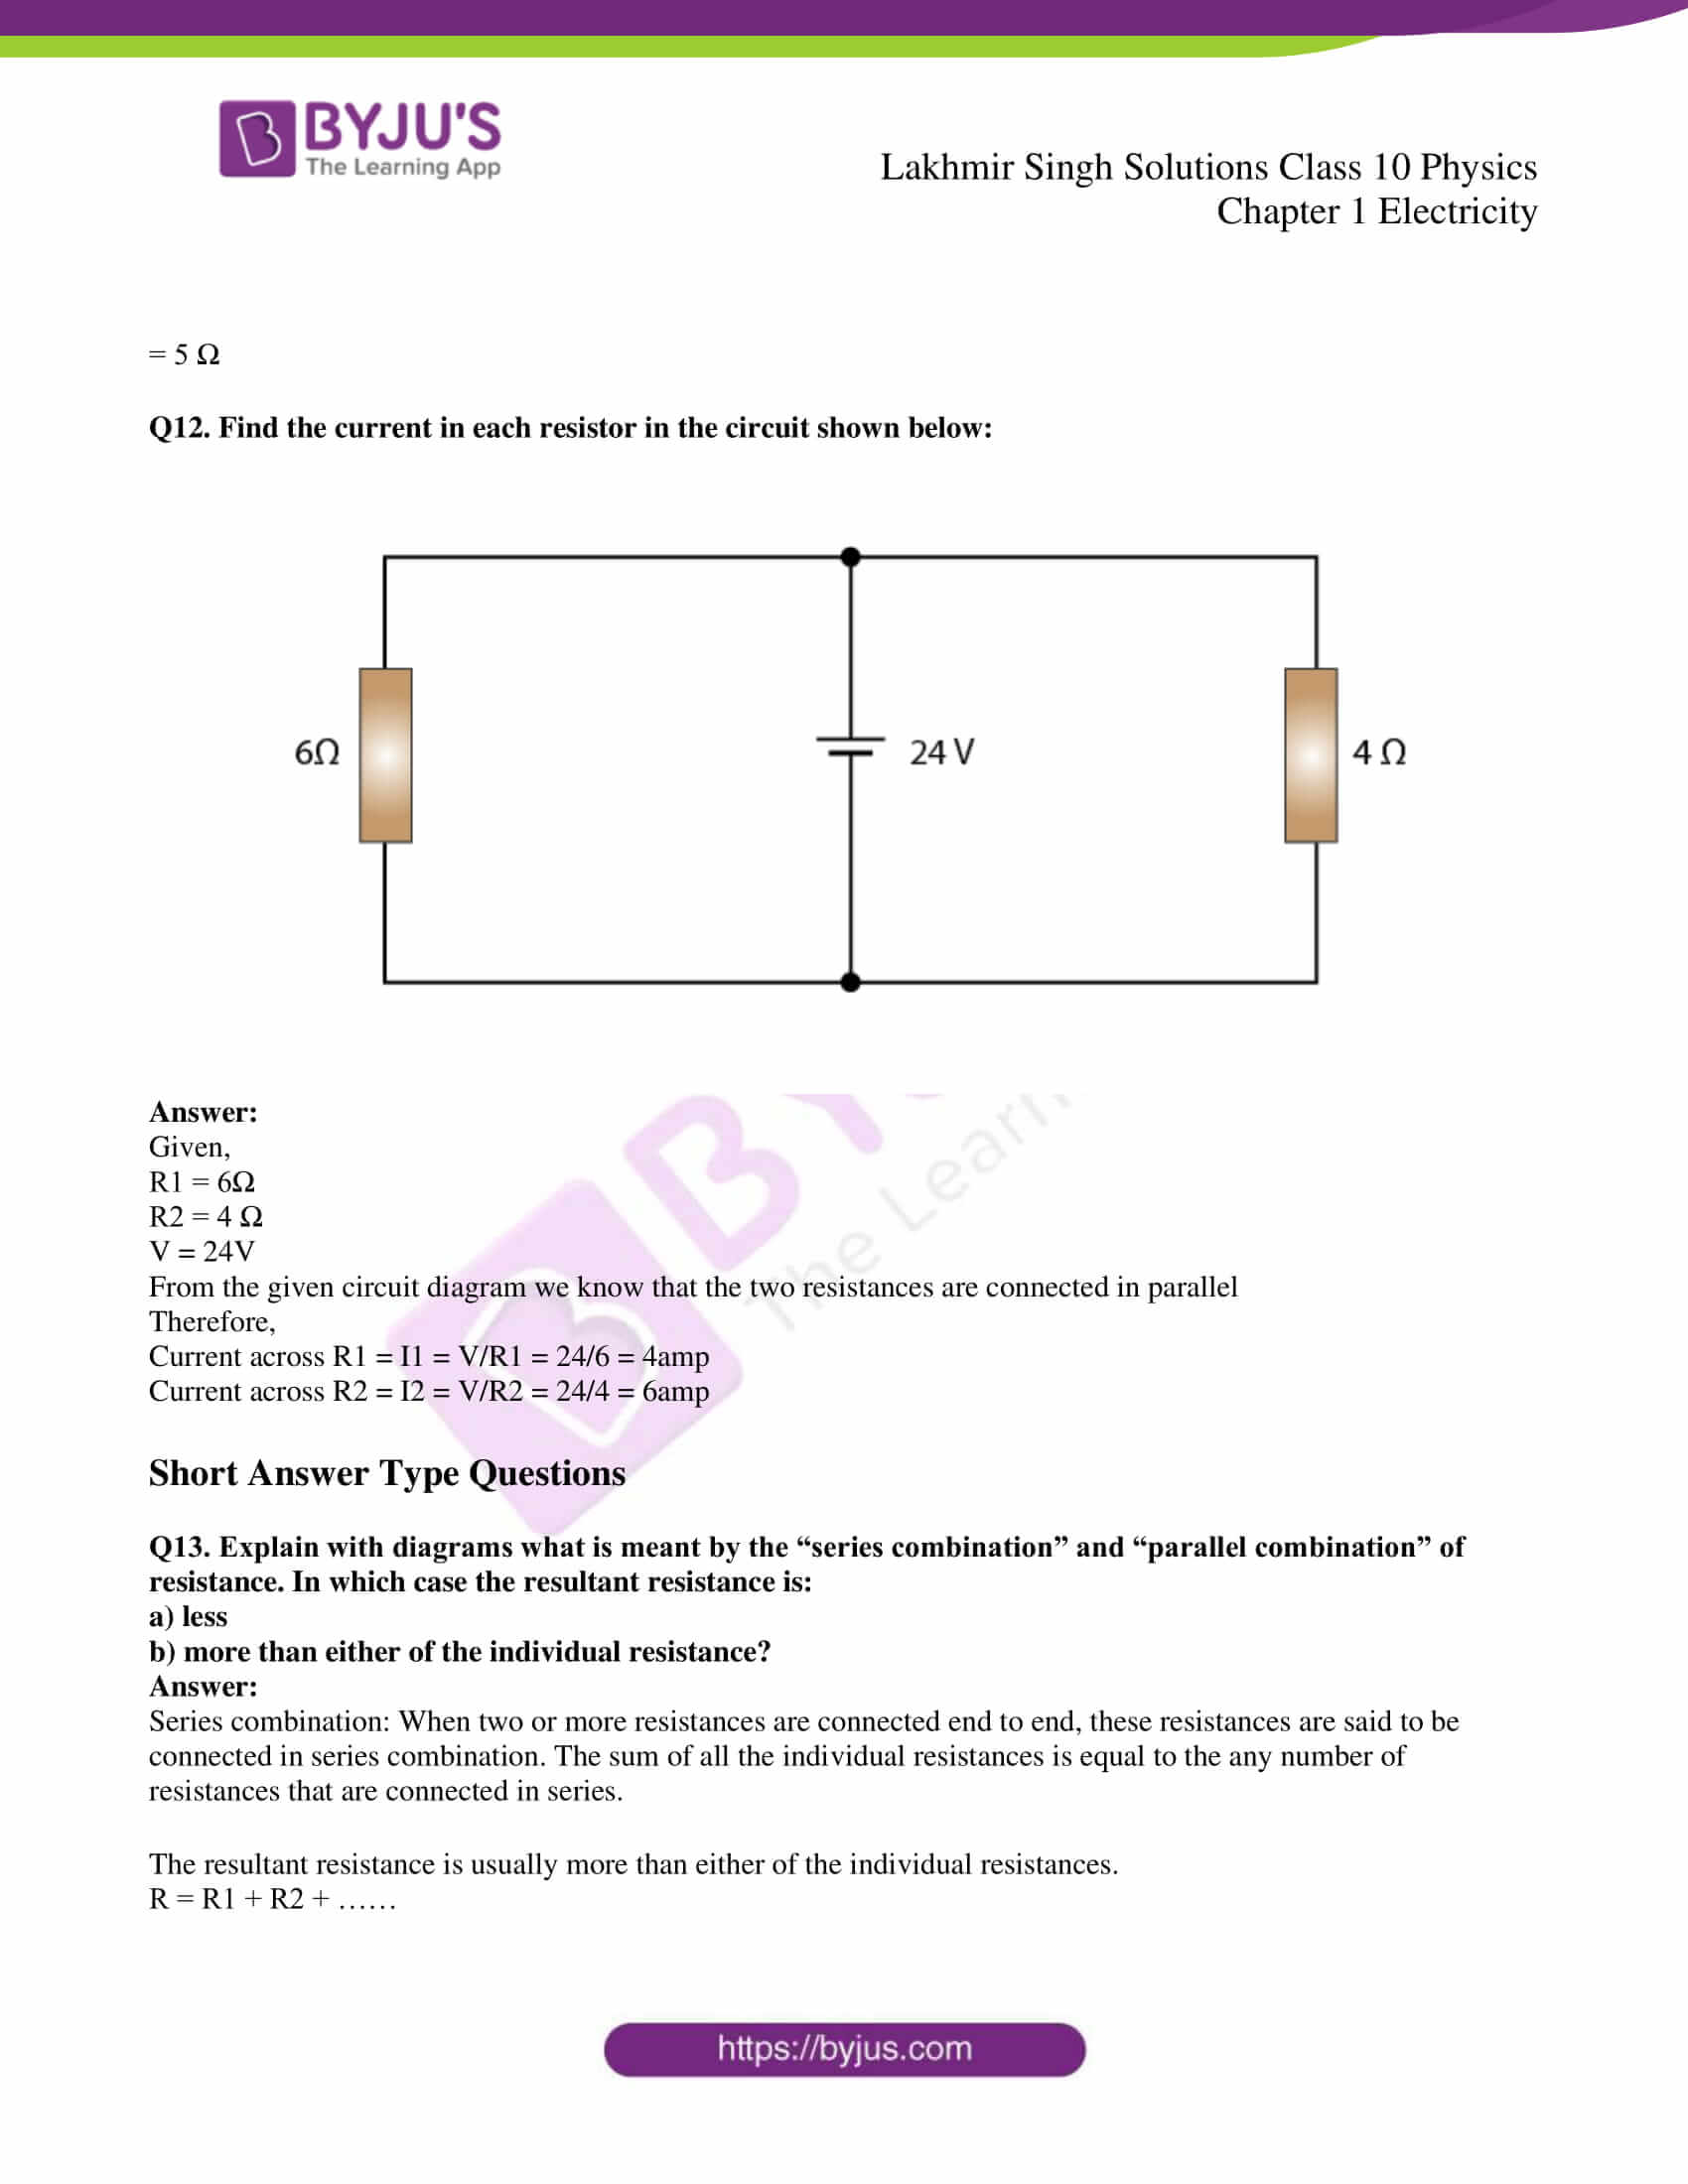 lakhmir singh solutions class 10 physics chapter 1 40